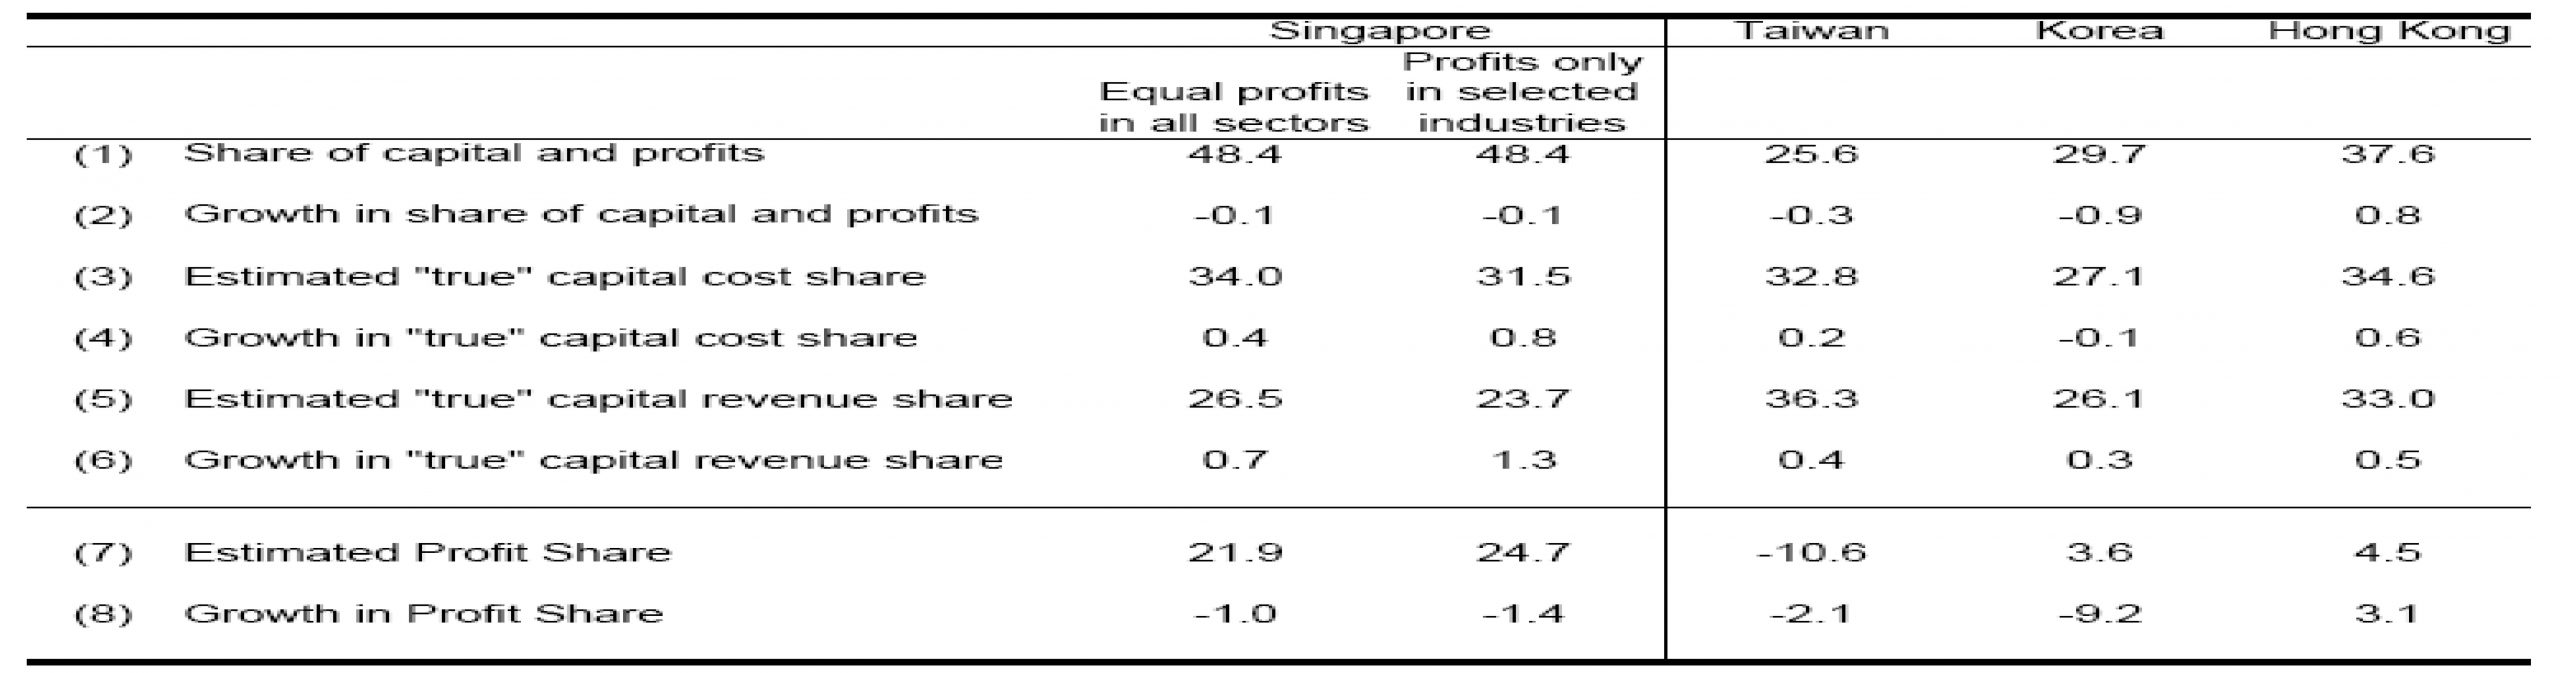 Estimation of Capital and Profit Shares, 1970-1990